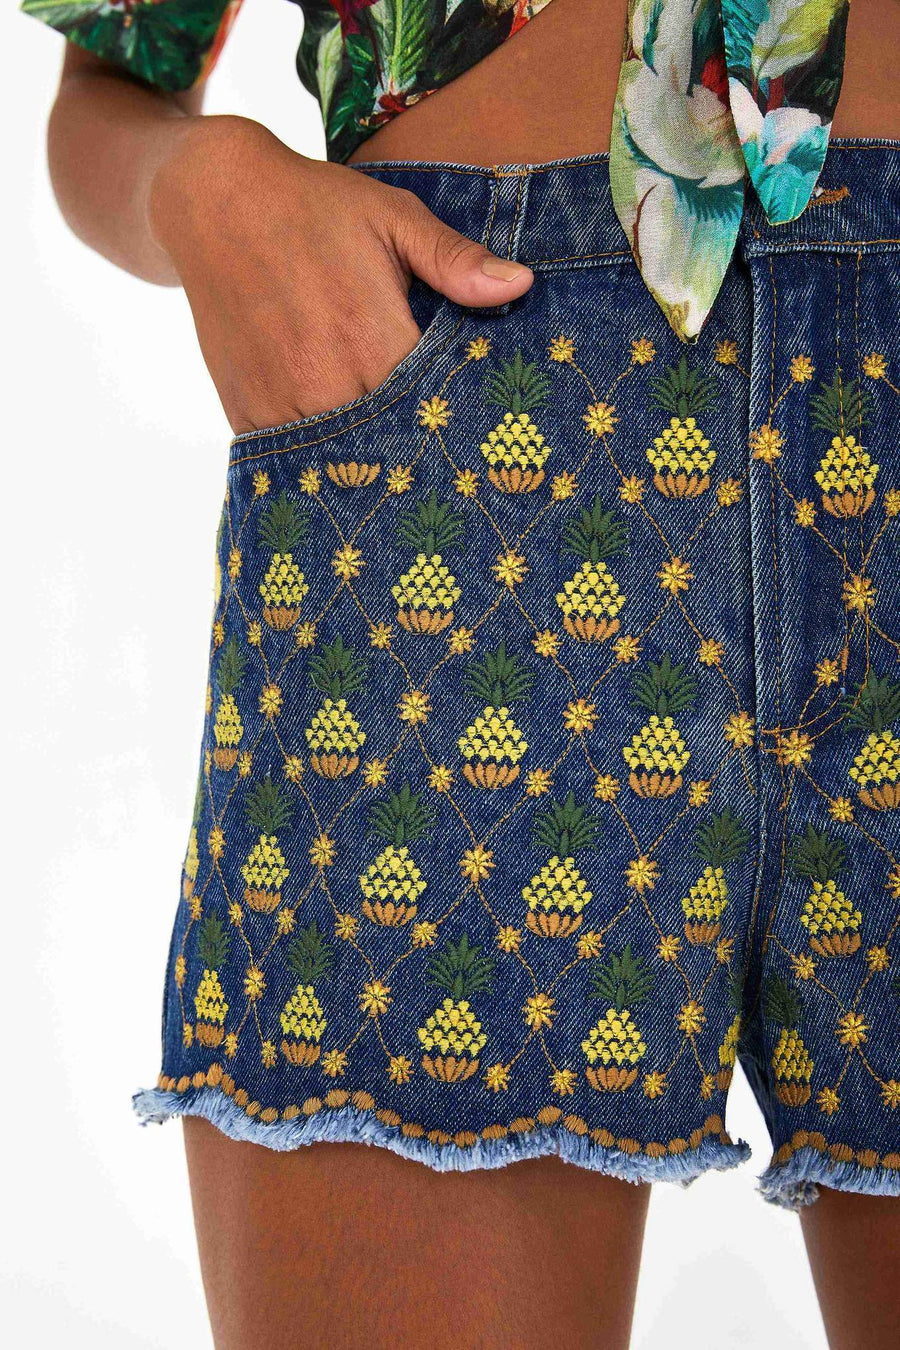 Pineapple Embroidered Shorts - South of London